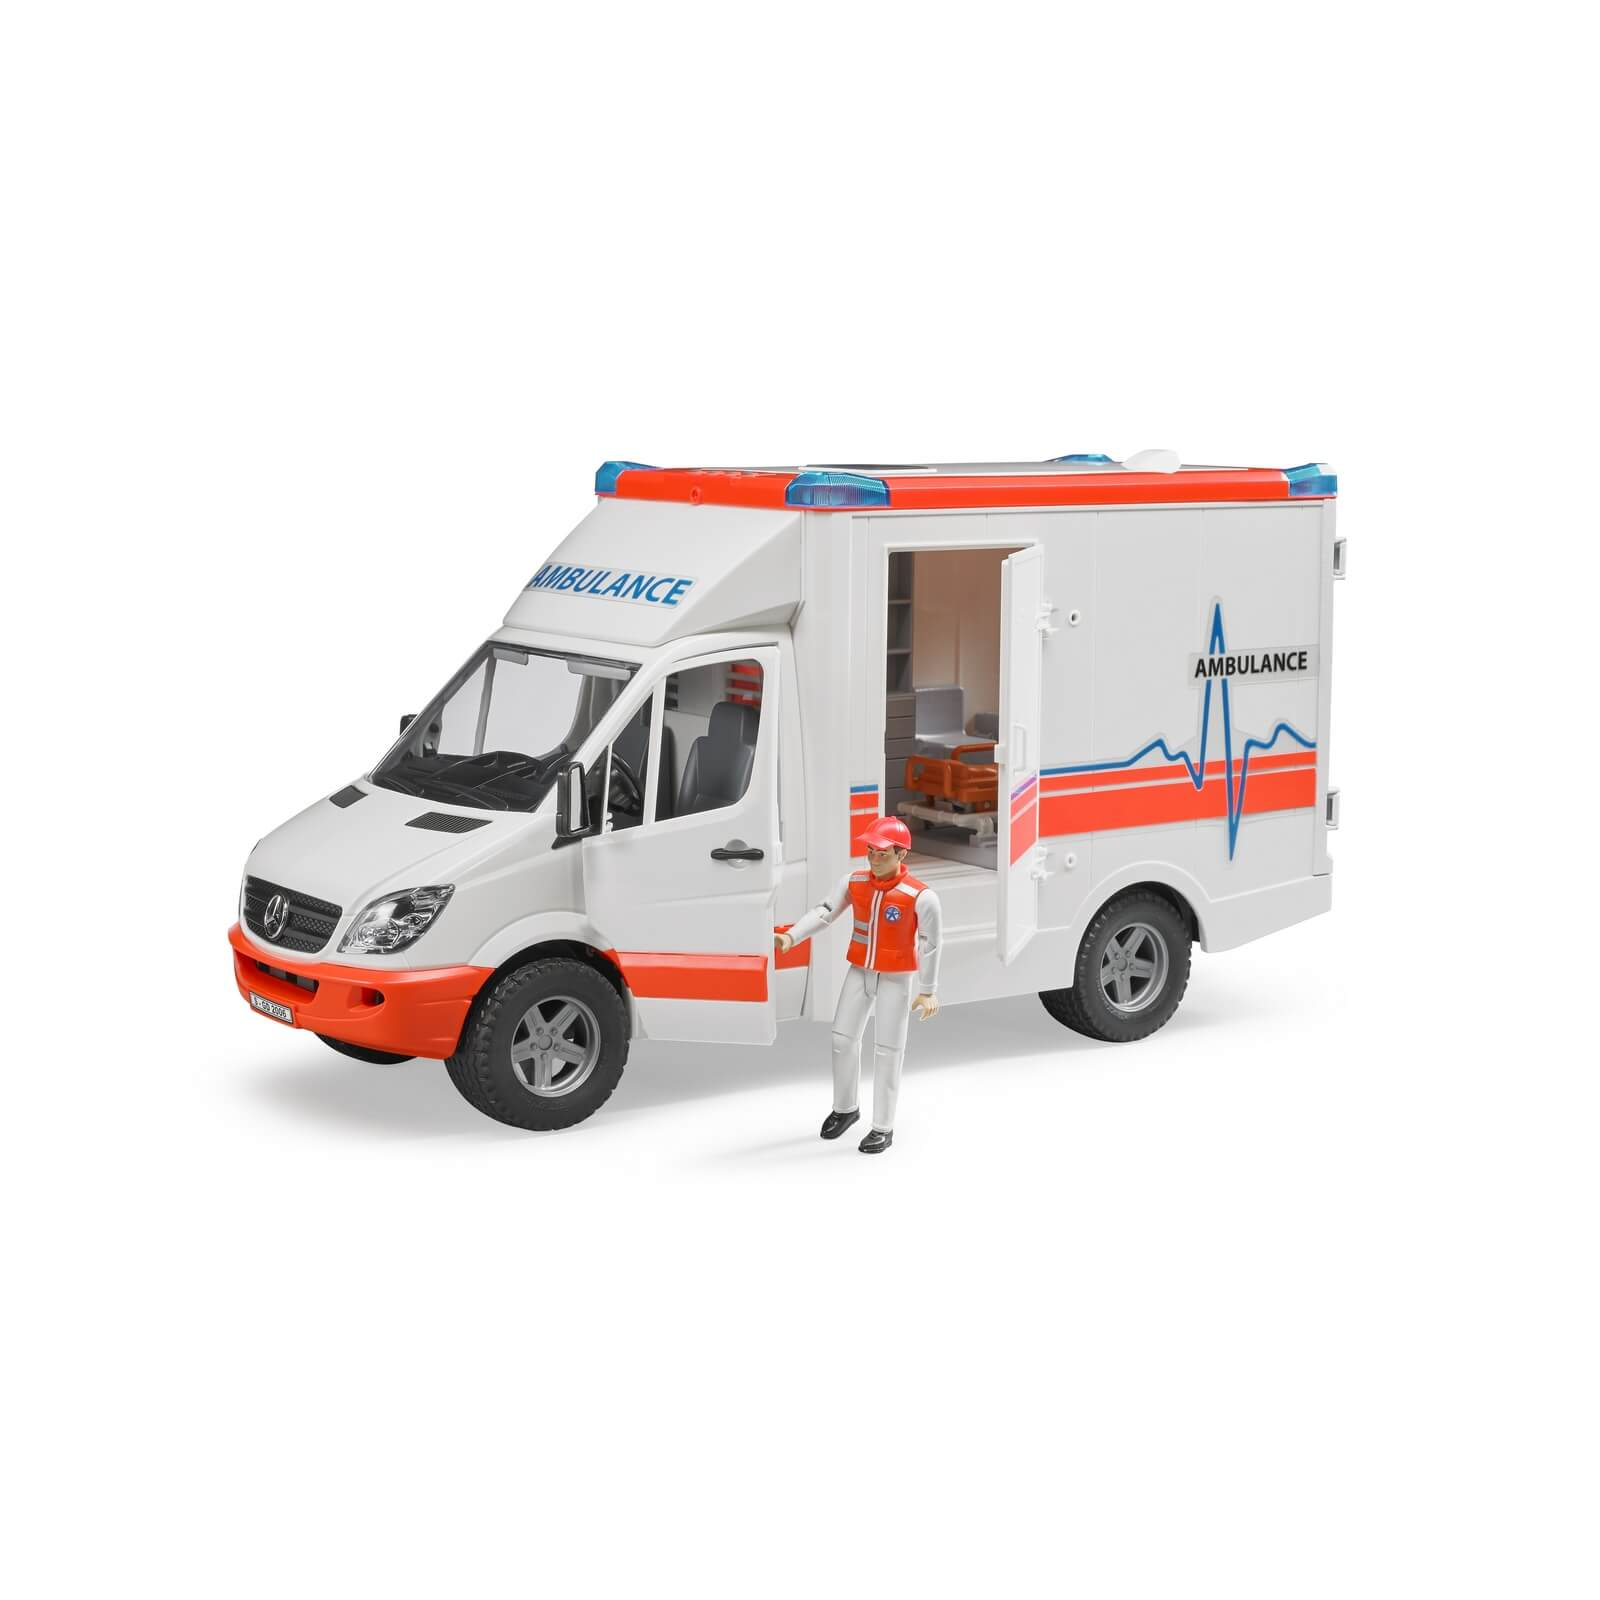 bruder mb sprinter ambulance with driver 02536 jadrem toys. Black Bedroom Furniture Sets. Home Design Ideas